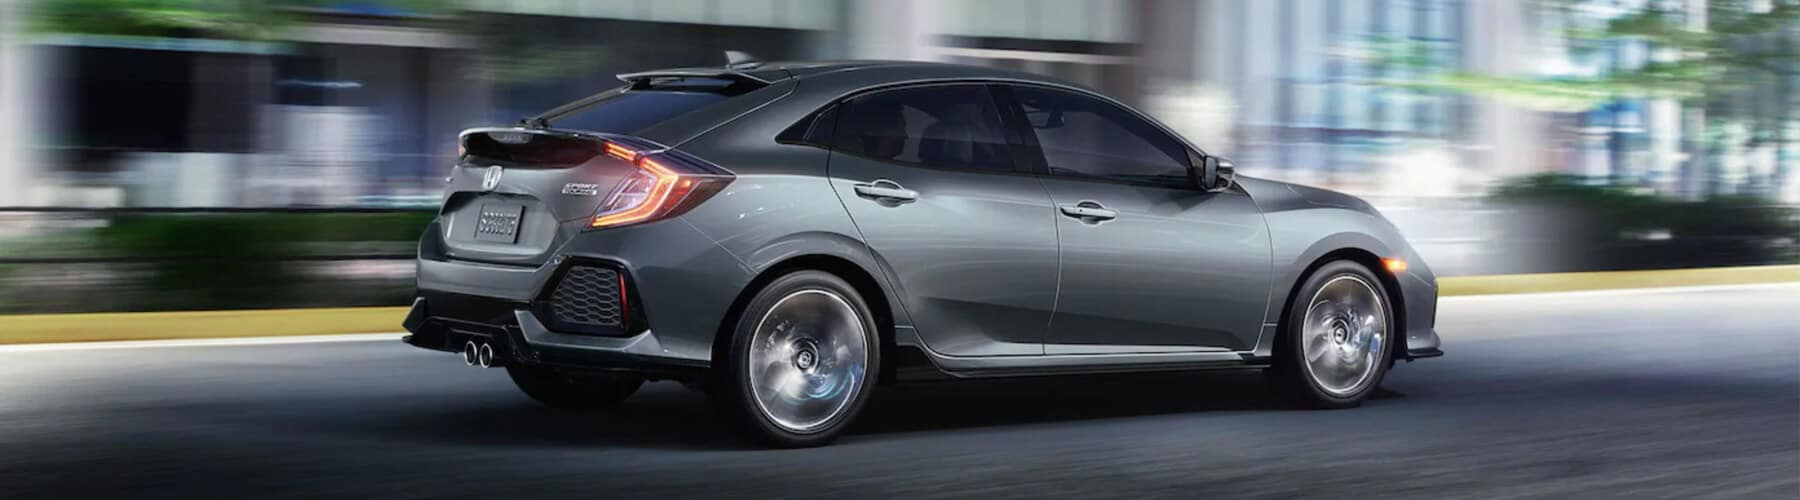 2019 Honda Civic Hatchback Banner